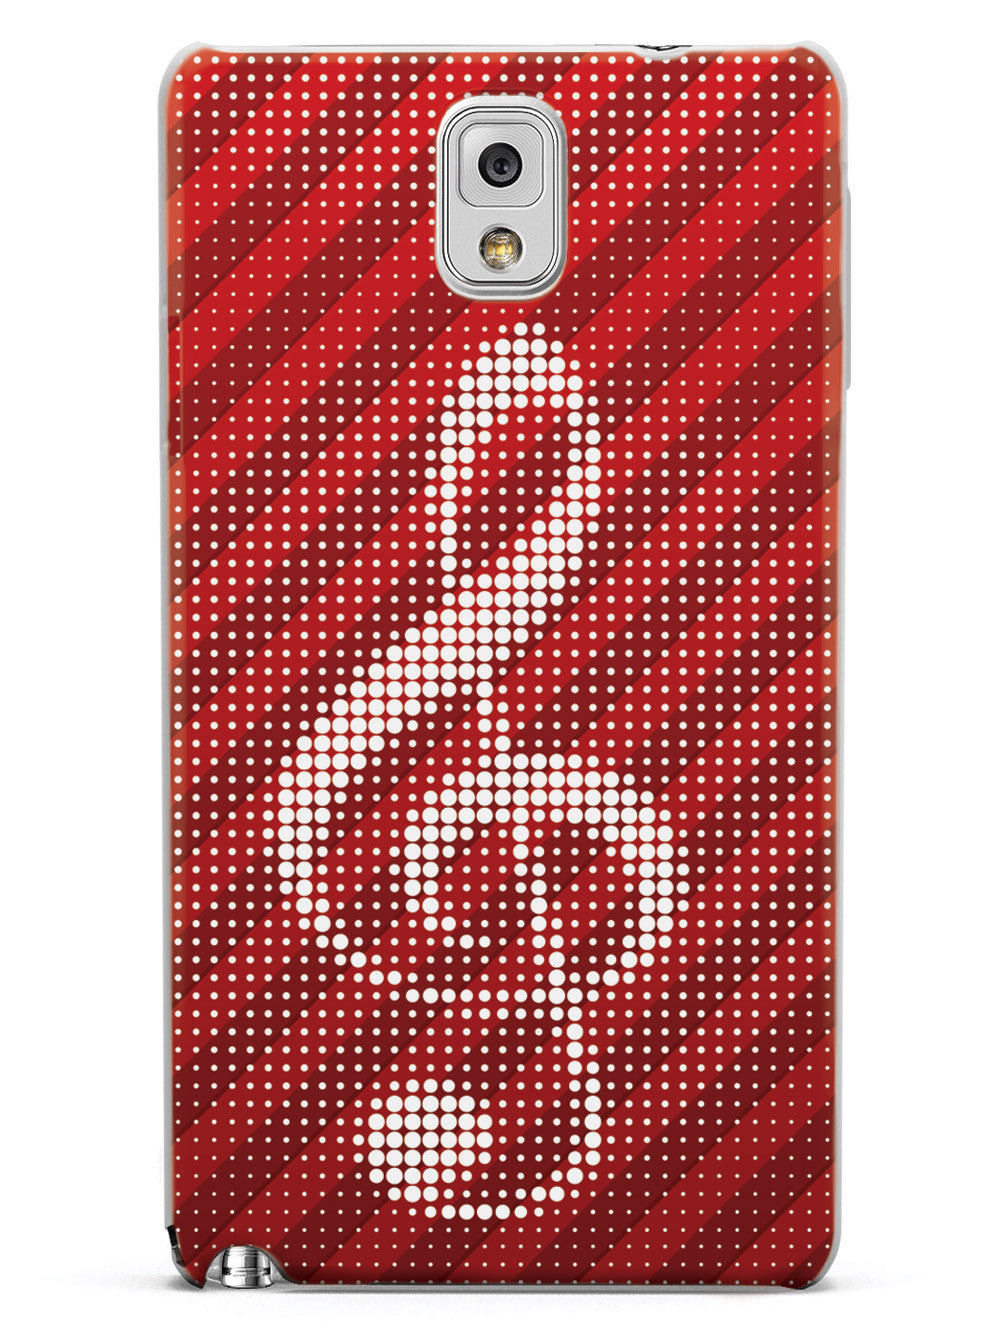 Treble Clef Polka Dots - Holiday Case